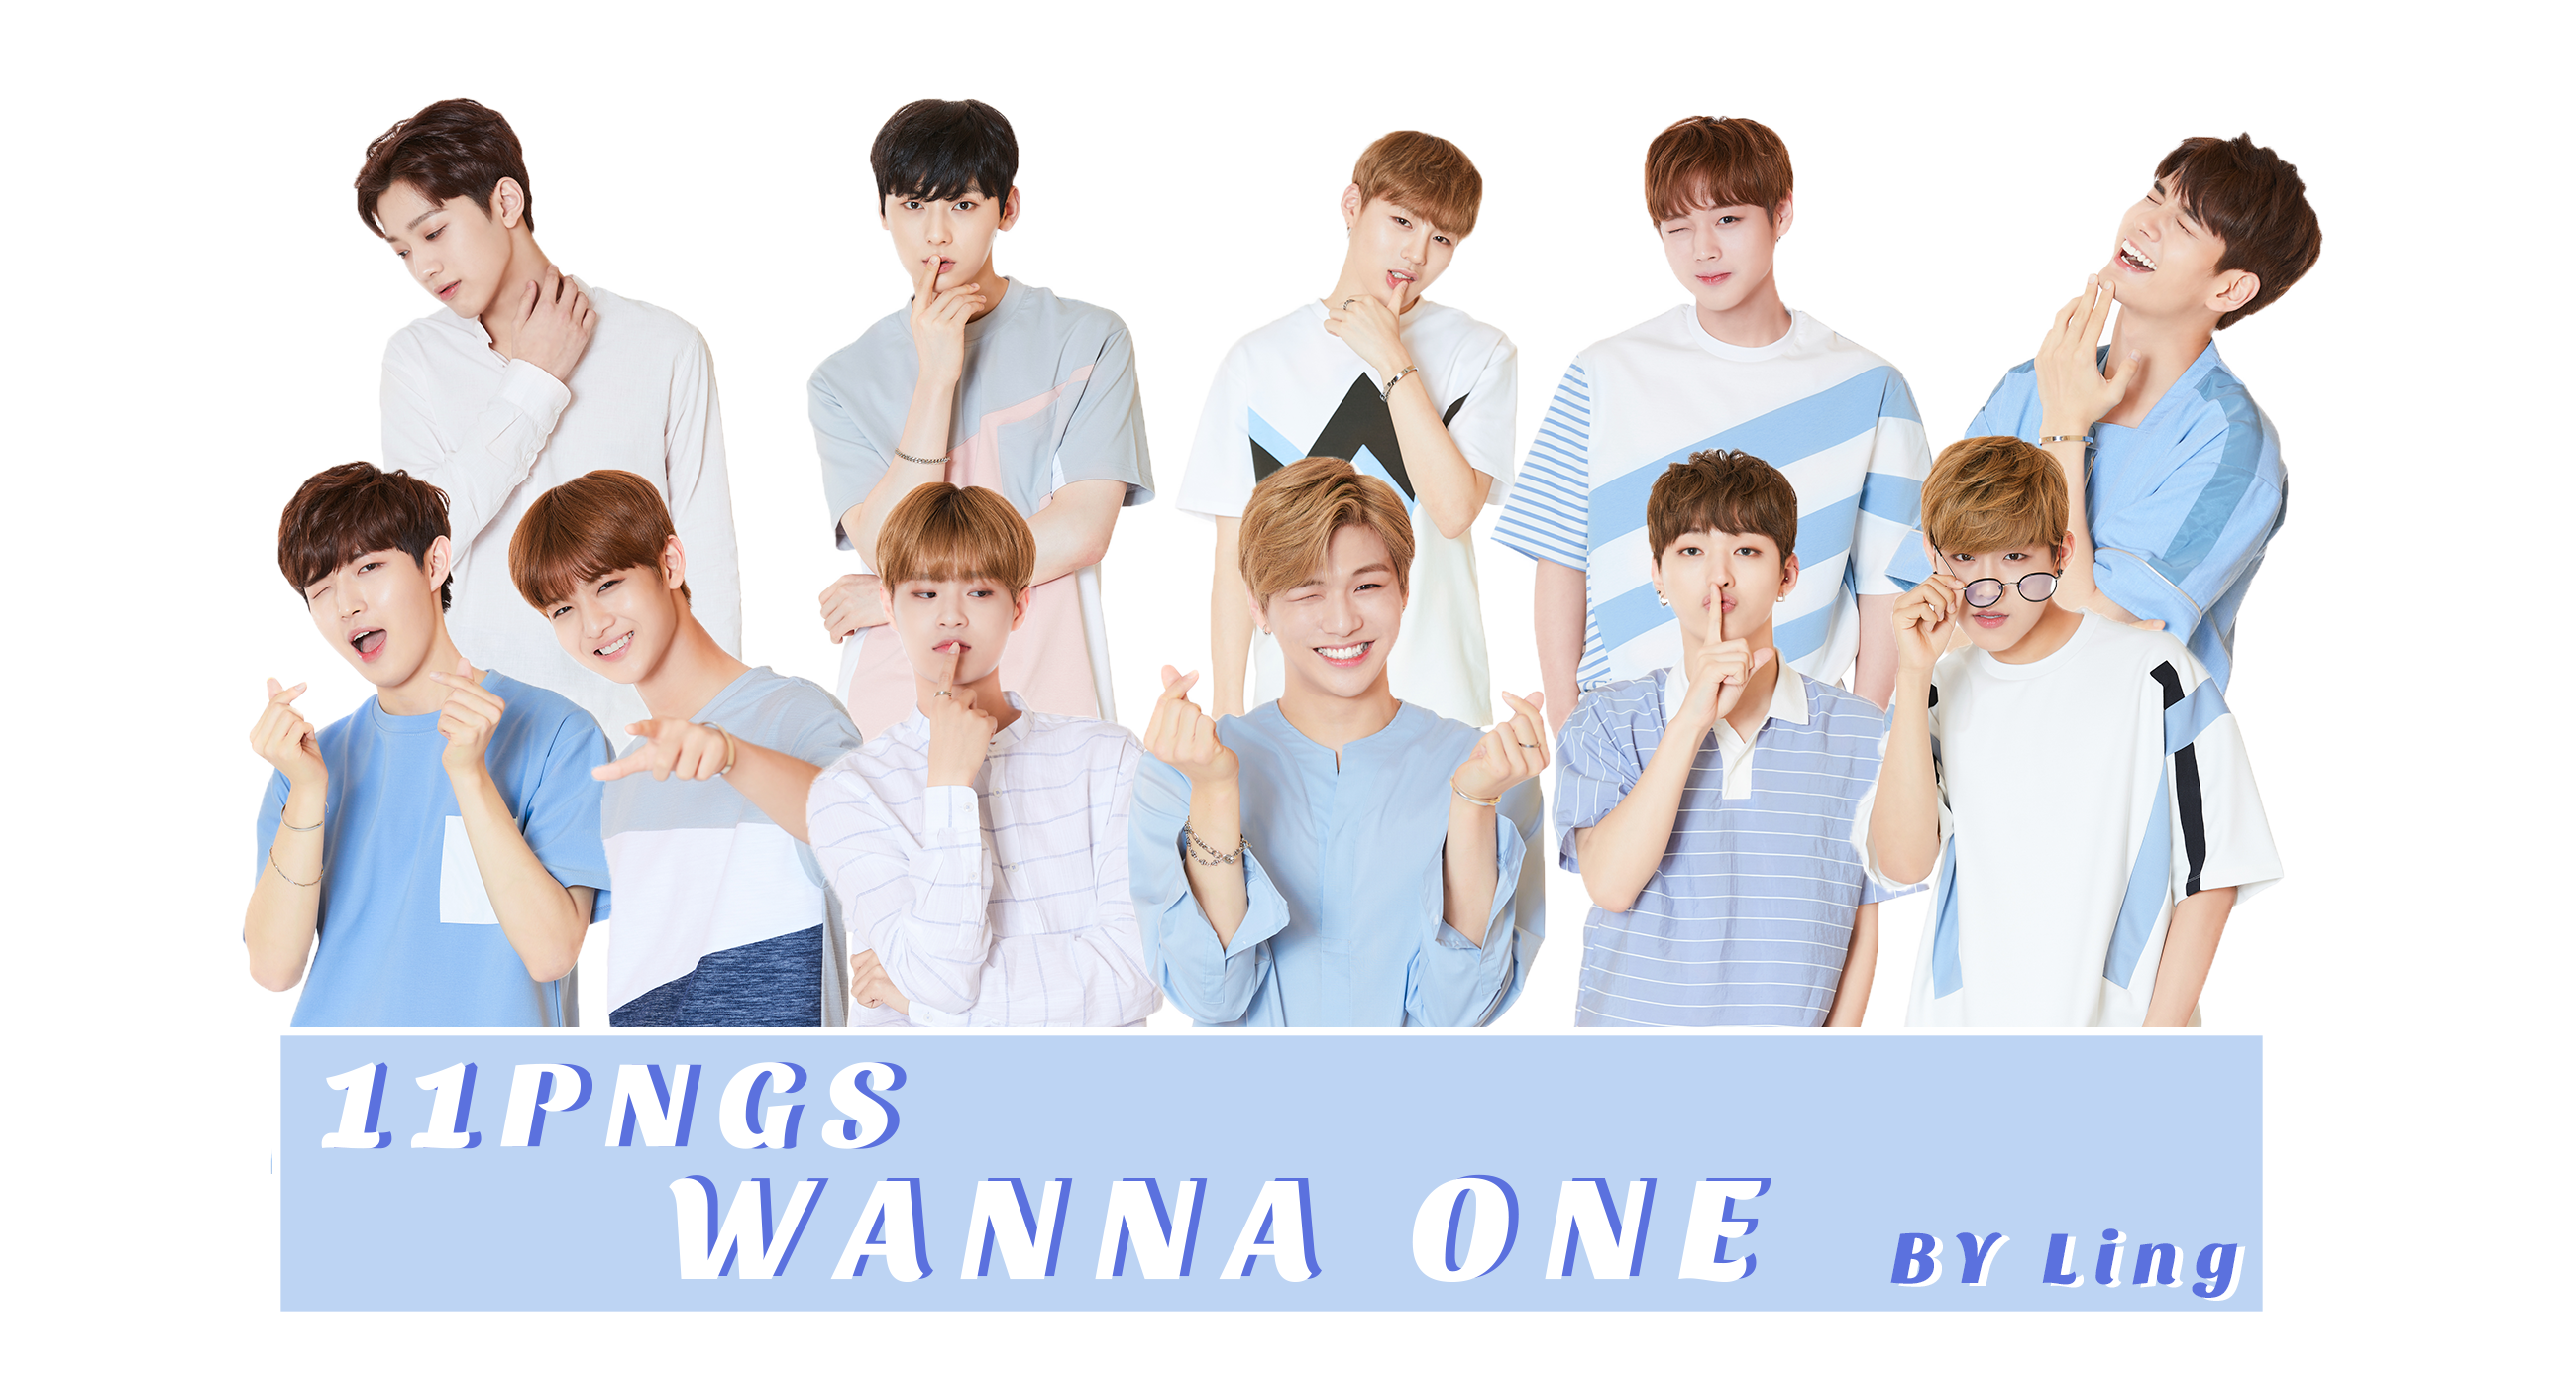 PNG PACK]WANNA ONE 11PNGS by l8686837 on DeviantArt.